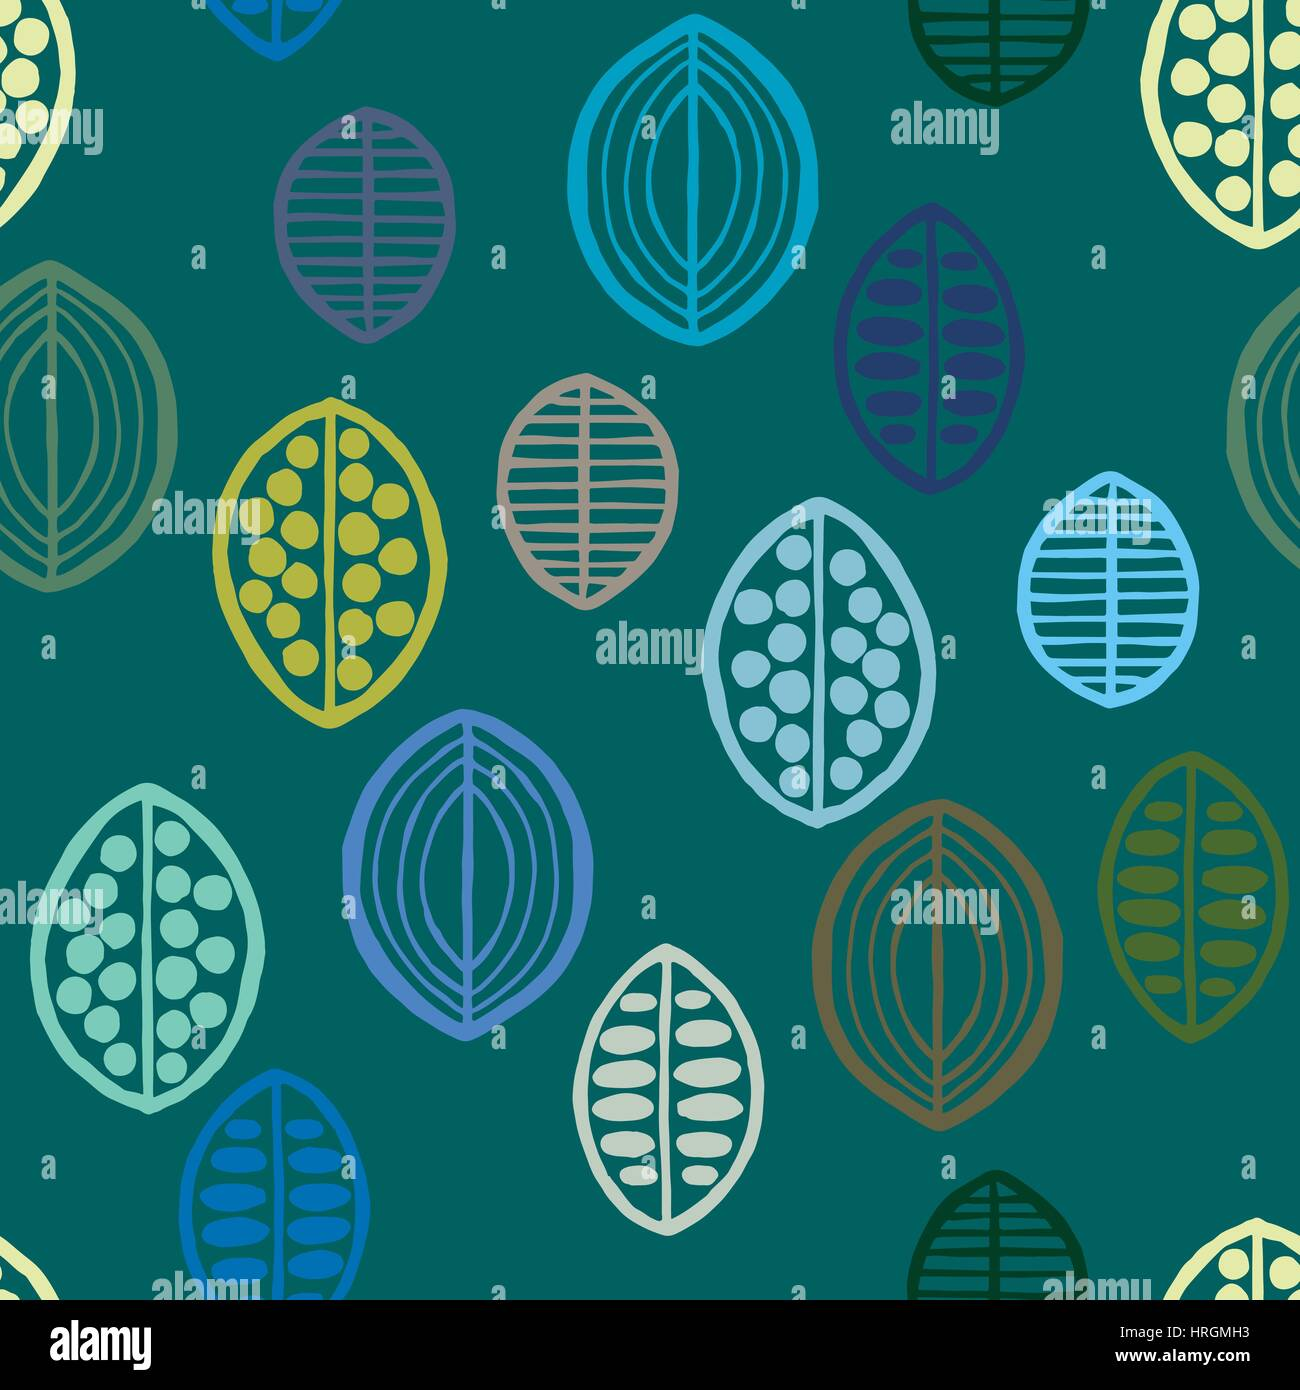 Seamless floral pattern with primitive leaves. Tribal ethnic background, blue and green tones. Textile design. - Stock Image